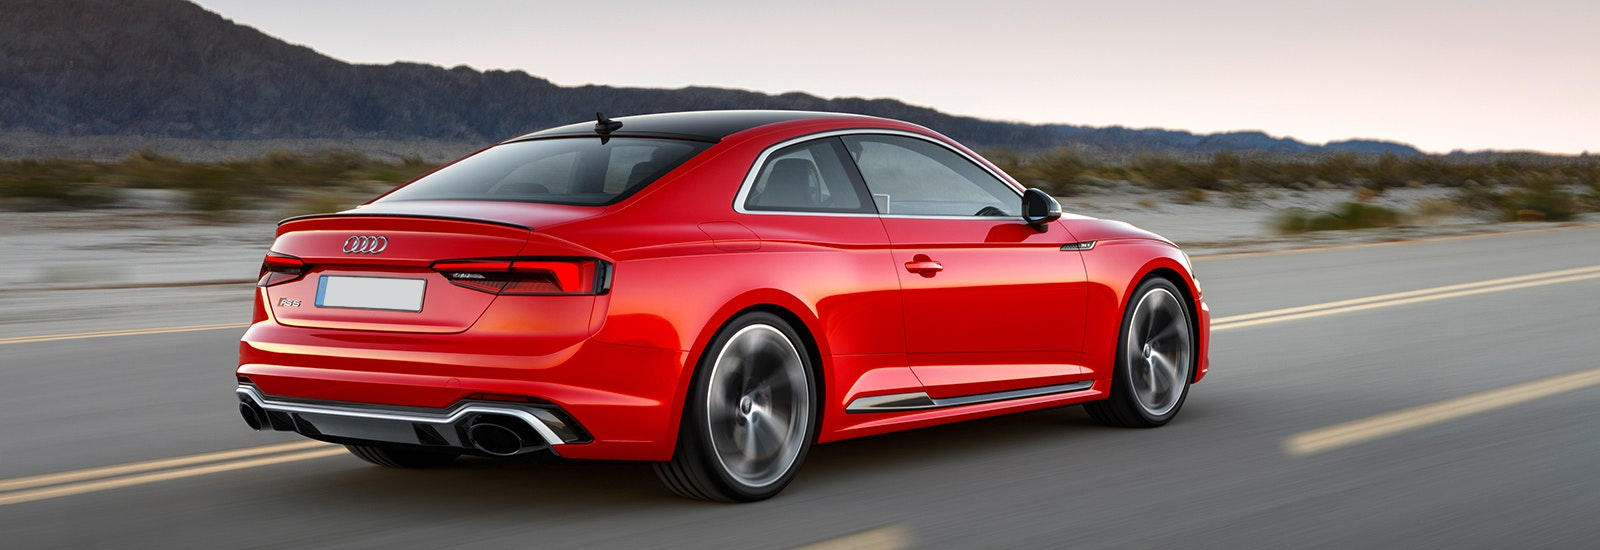 2018 Audi S5 Coupe  Drive Interior and Exterior 354 hp